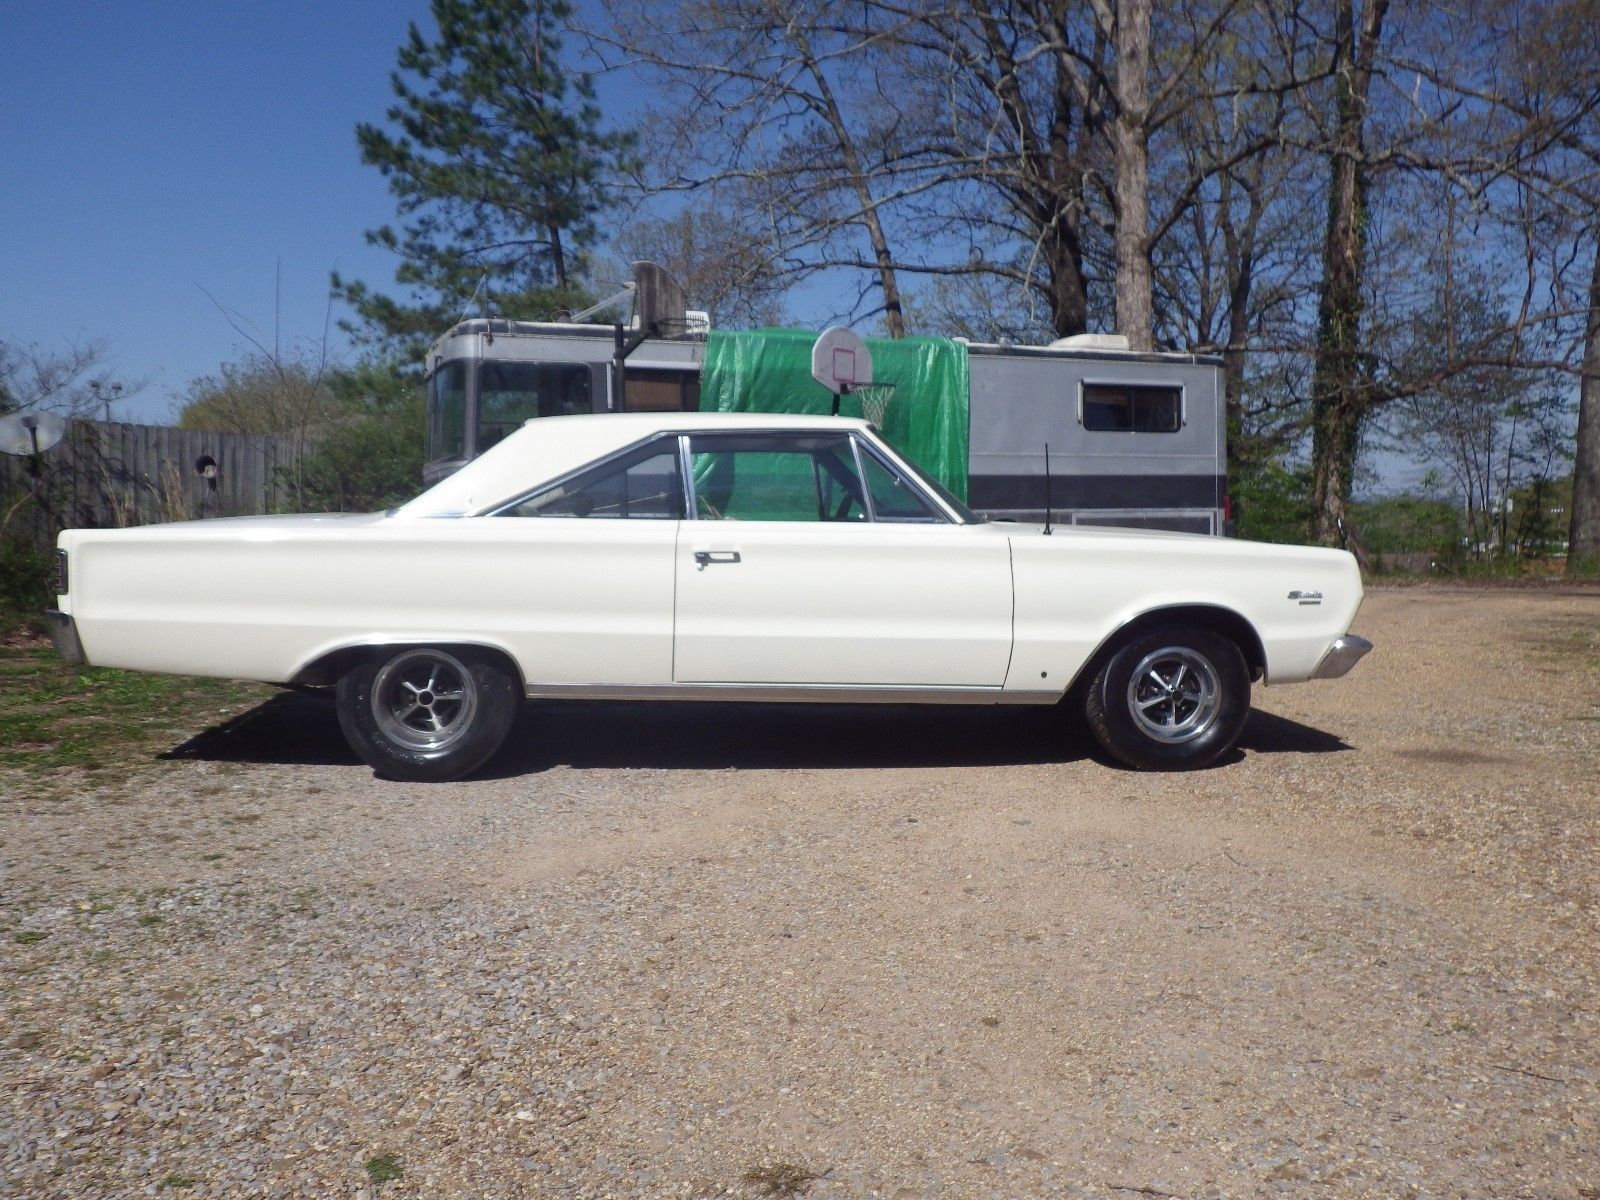 1966 Plymouth Satellite | Plymouth, Motor car and Cars